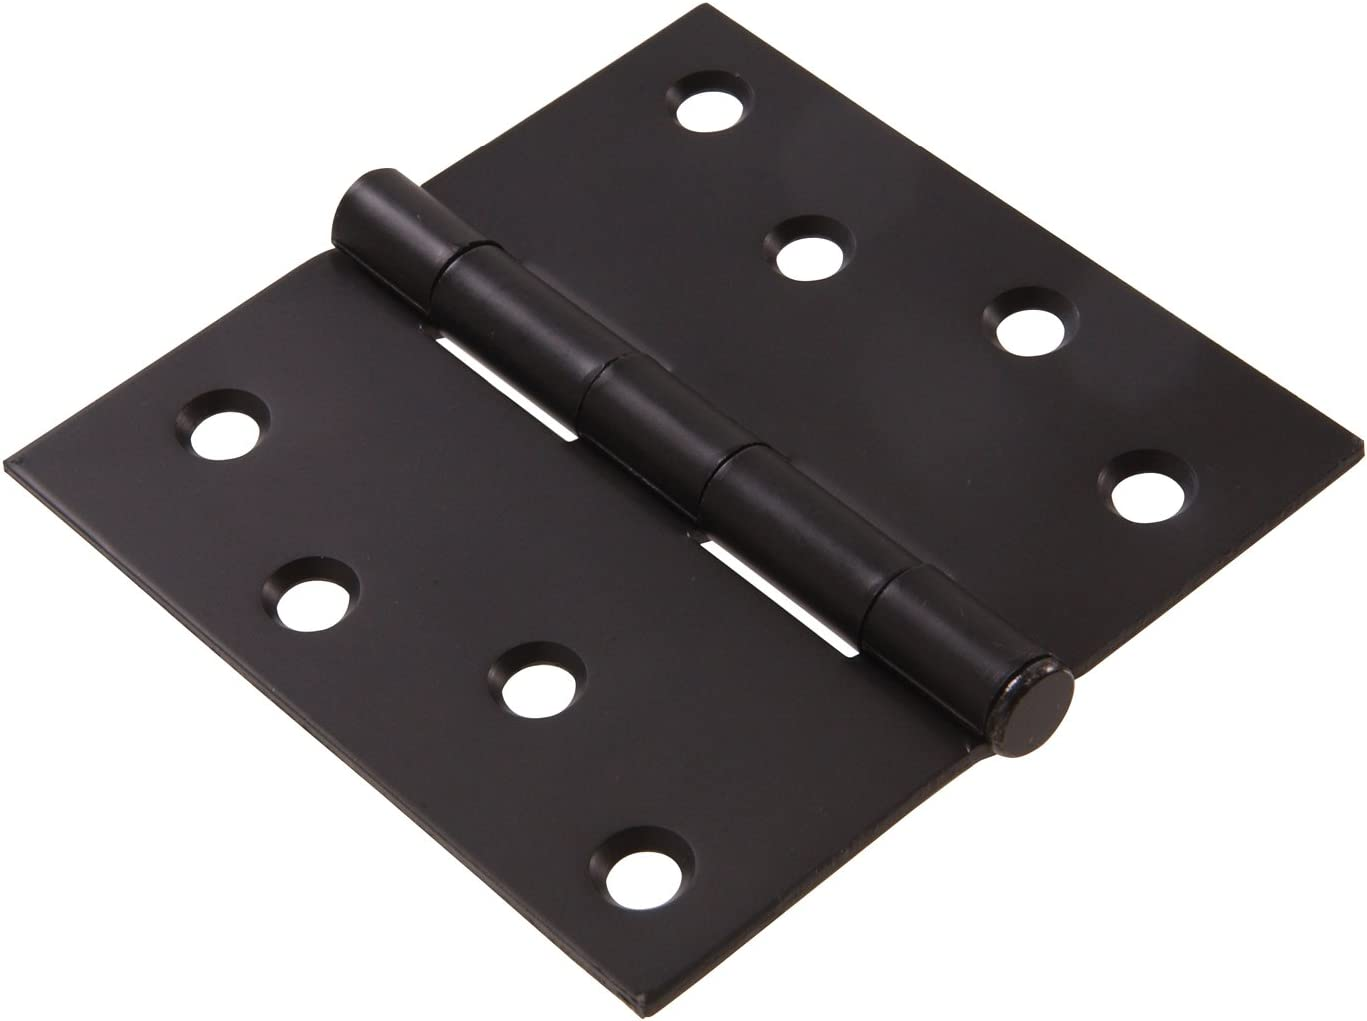 Hillman Hardware Essentials 852826 Residential Square Corner Door Hinges with Removable Pin Oil Rubbed Bronze 4